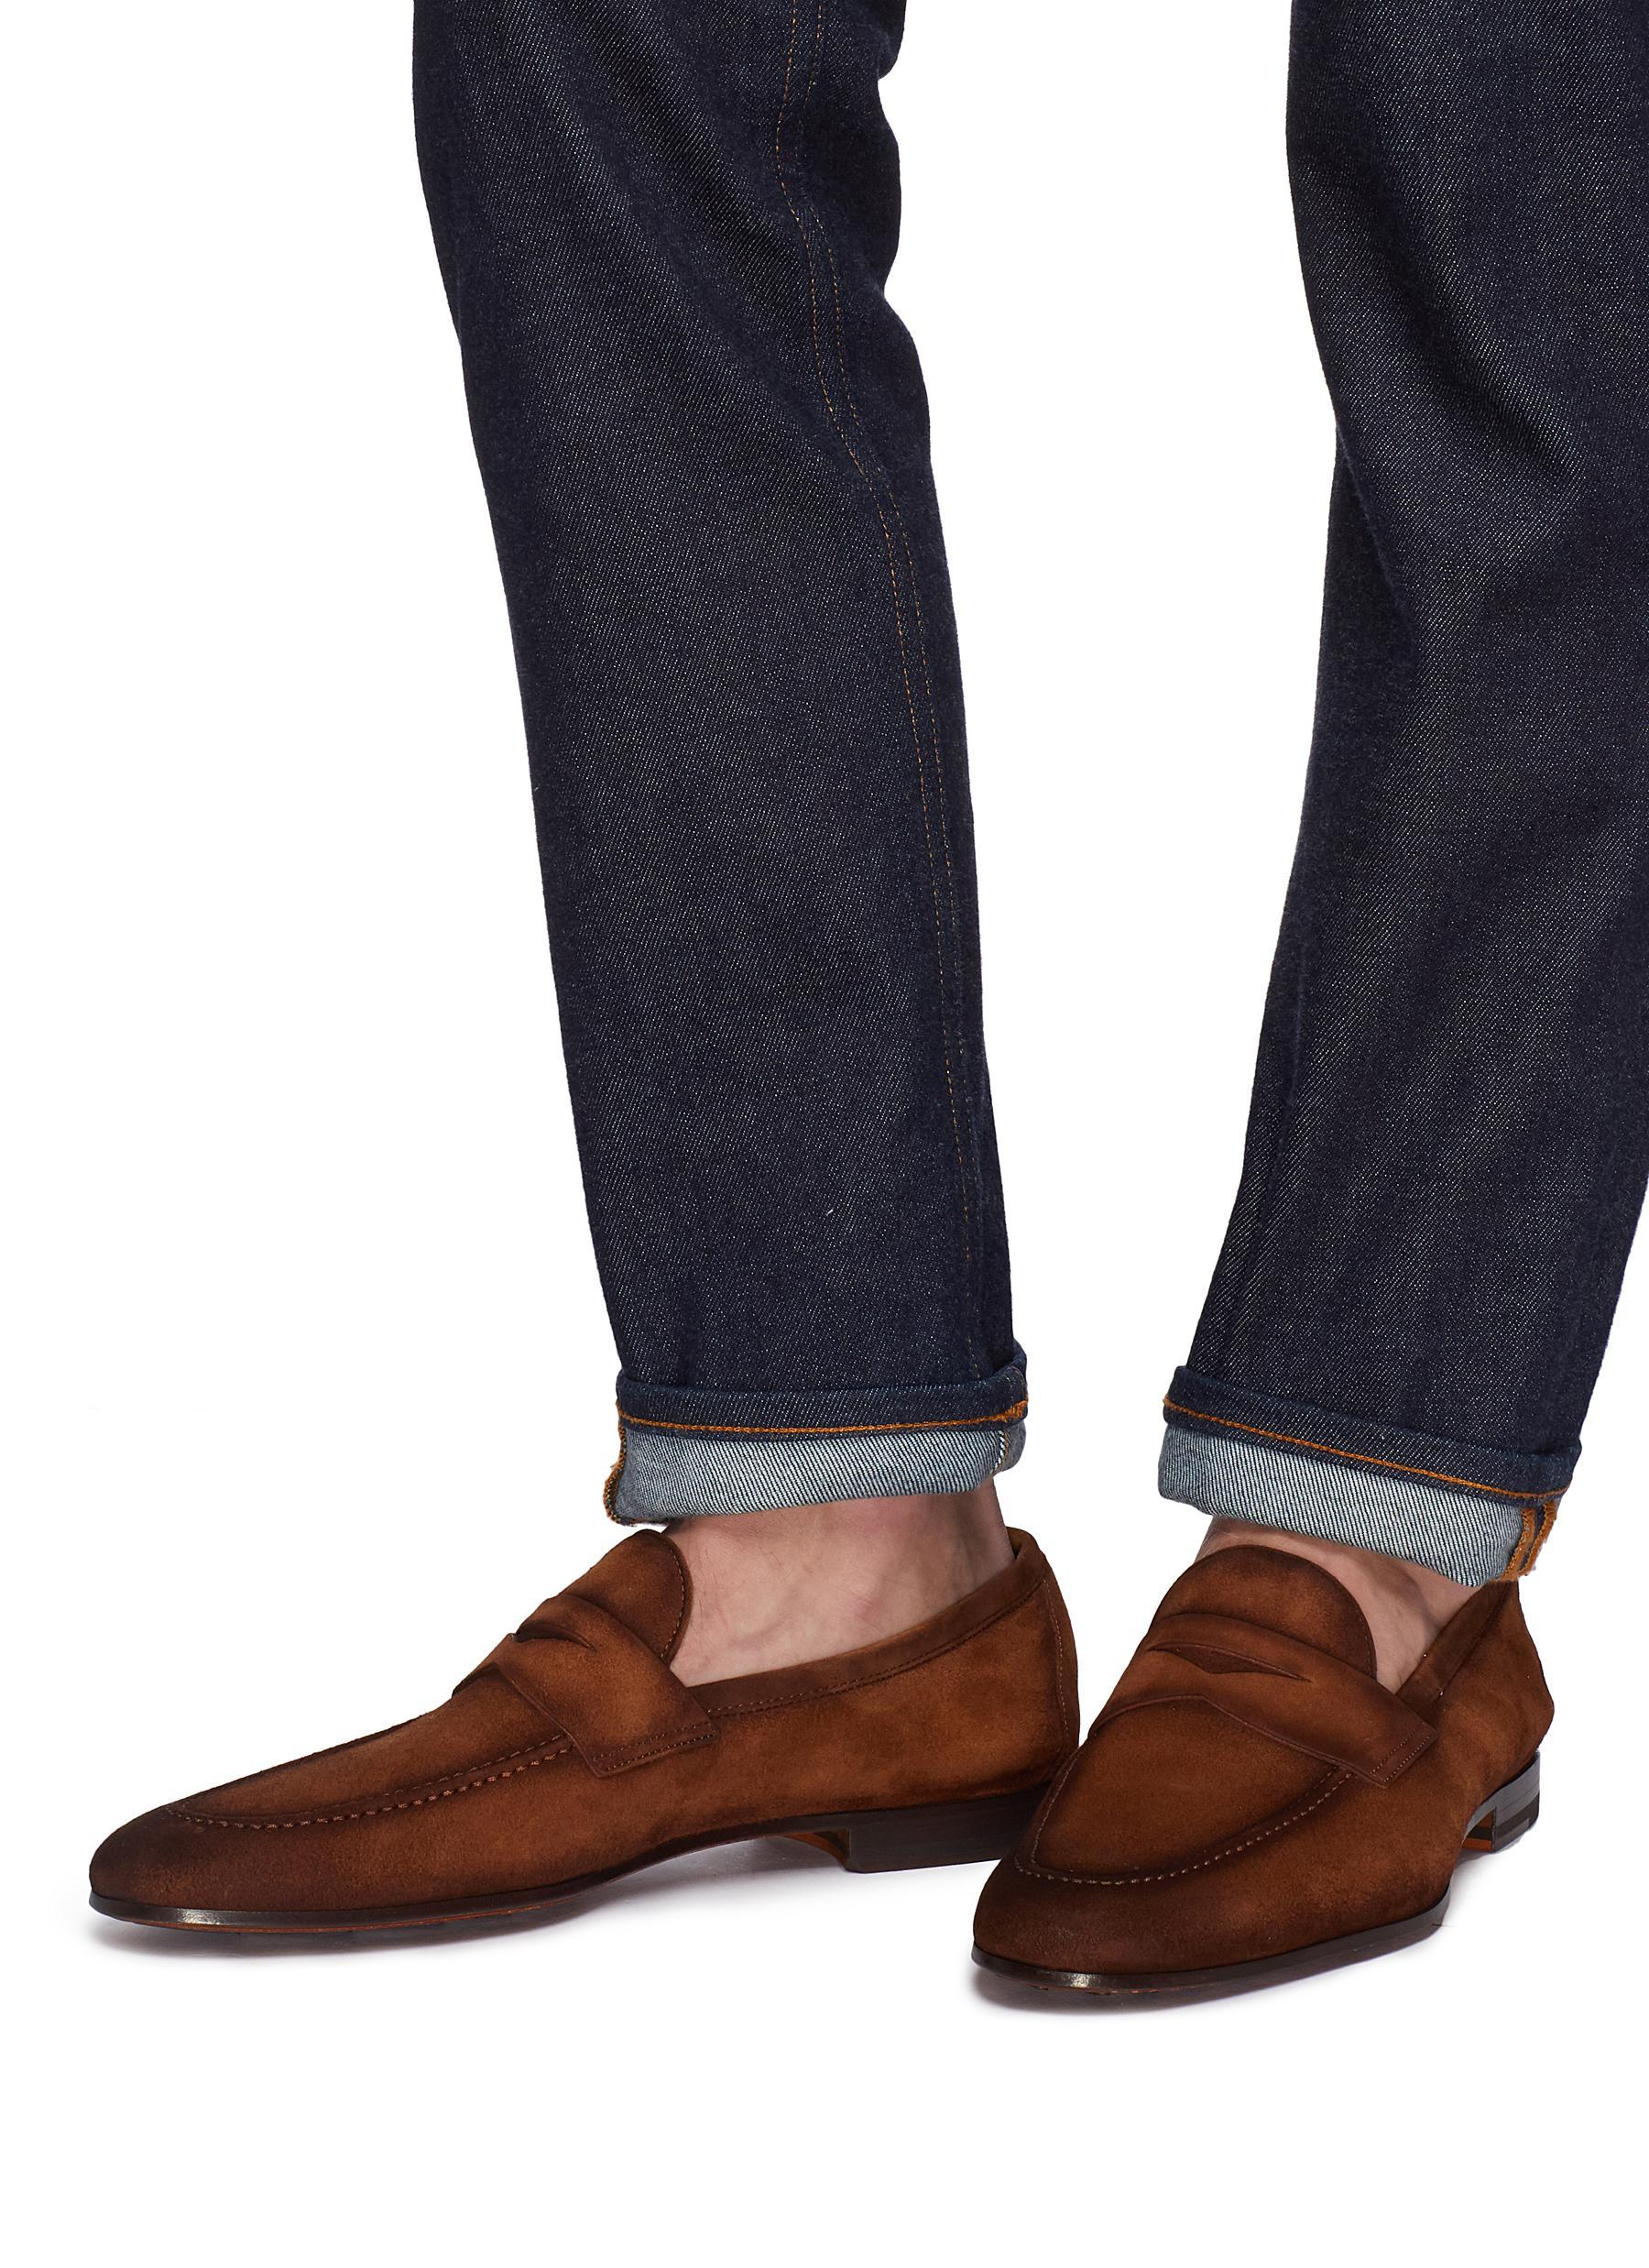 c506cbed57c Magnanni Shoes - Brown Suede Penny Loafers for Men - Lyst. View fullscreen